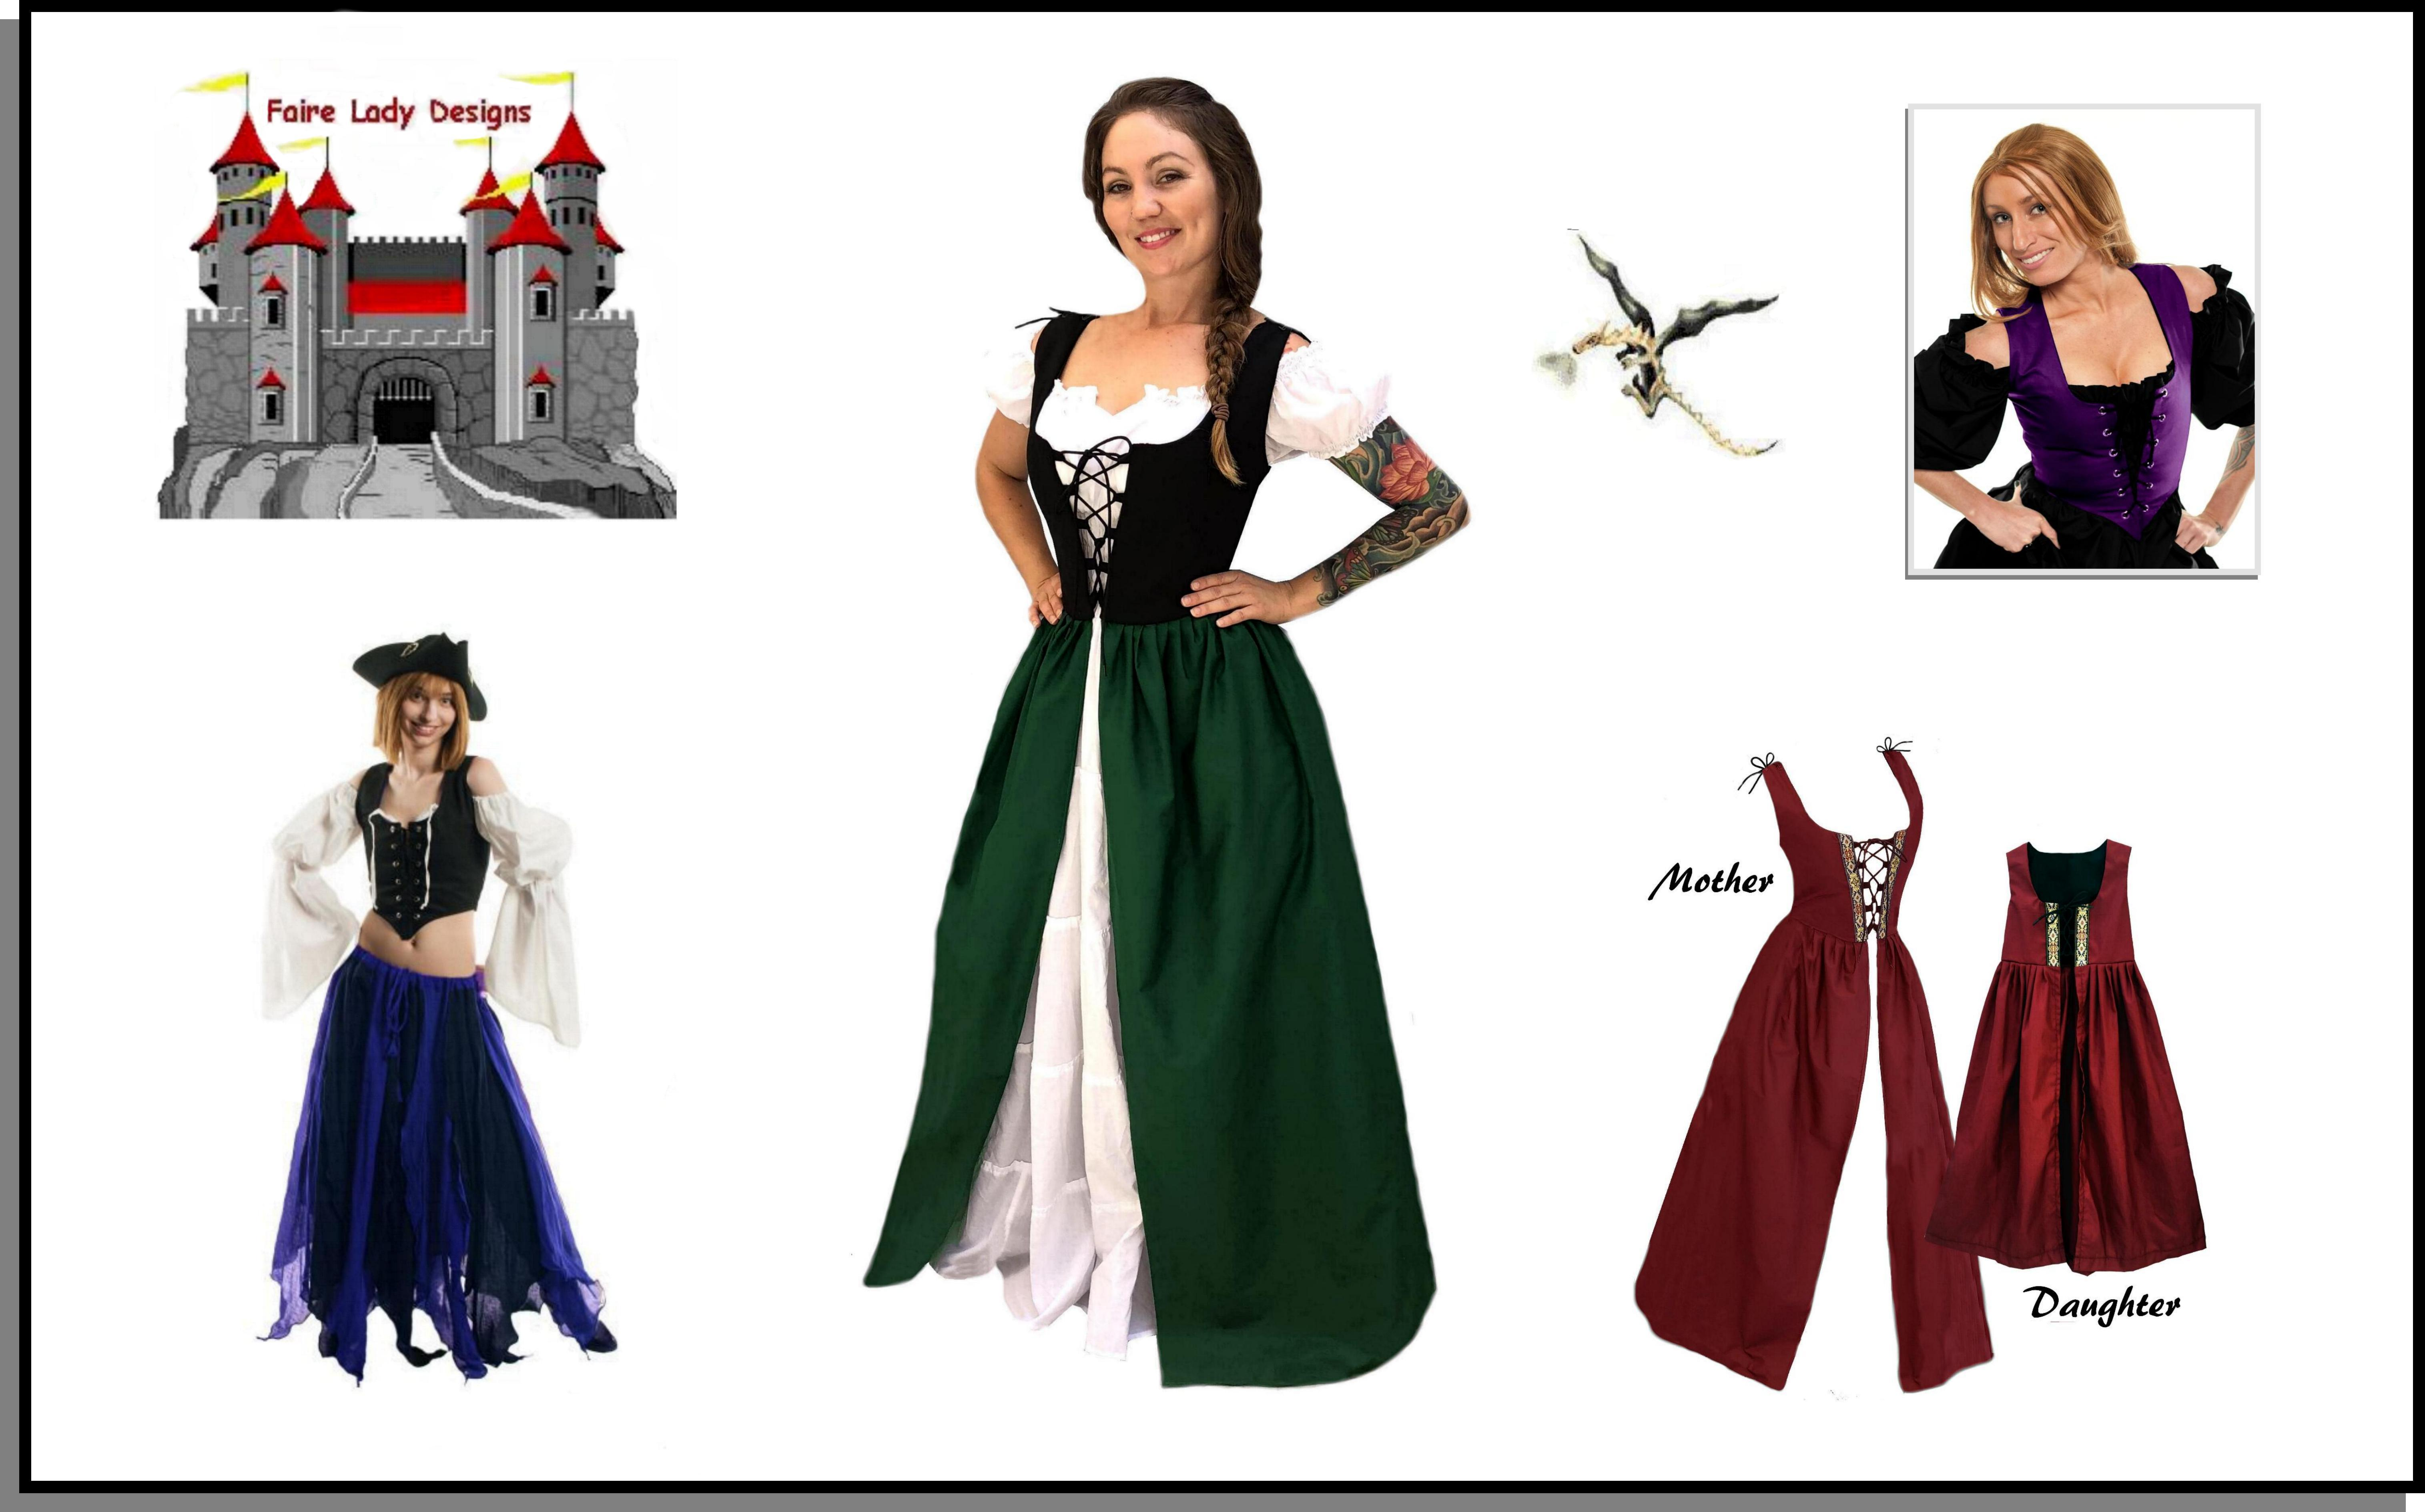 Great Deals From FAIRE LADY DESIGNS In 99 Cent Auctions